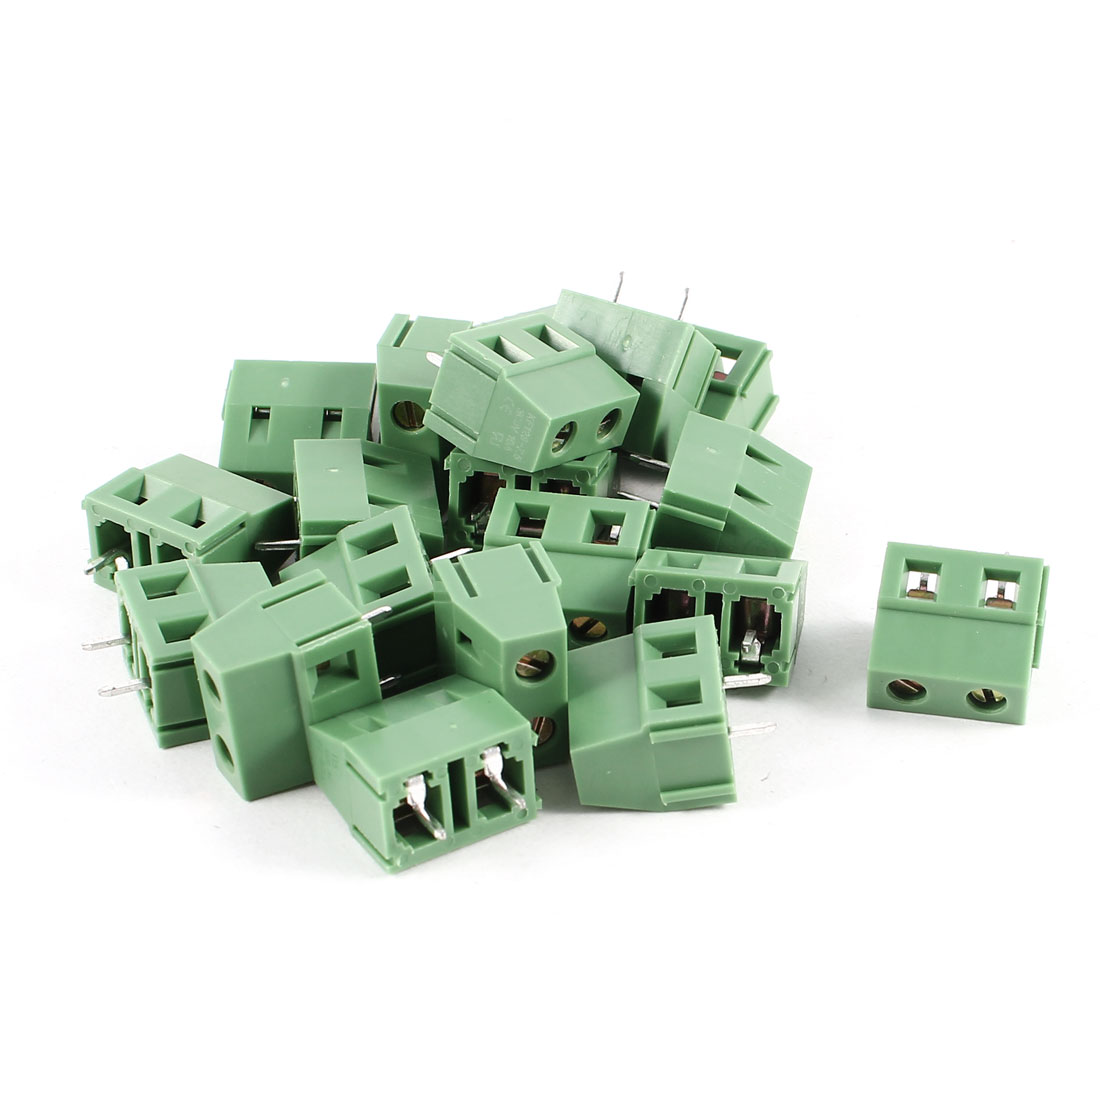 20 Pcs 2P 2Pins 7.5mm PCB Wire Plug-in Screw Terminal Block Connectors 300V 10A KF128-7.5